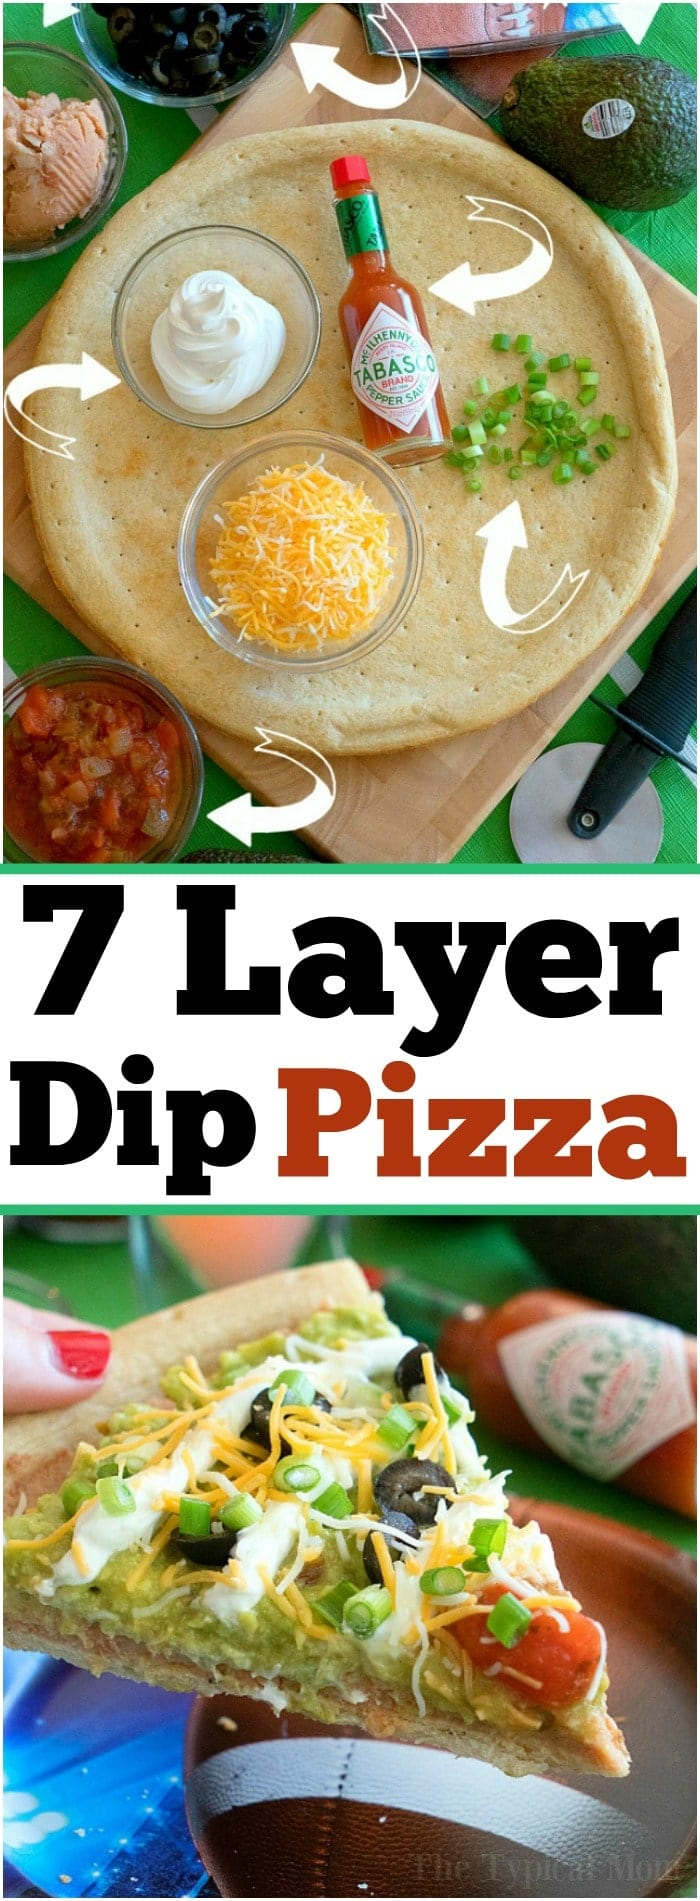 The most amazing football appetizer is this 7 layer dip pizza with tons of guacamole and just enough heat! A hearty meal or snack when you're having a party and packed with tons of flavor, layer after delicious layer. You have got to try this unique pizza idea at your house! #pizza #7layerdip #appetizer #guacamole #partyfood #football #AD #FlavorYourWorld #GuacWorld  http://bit.ly/2p8H3ky